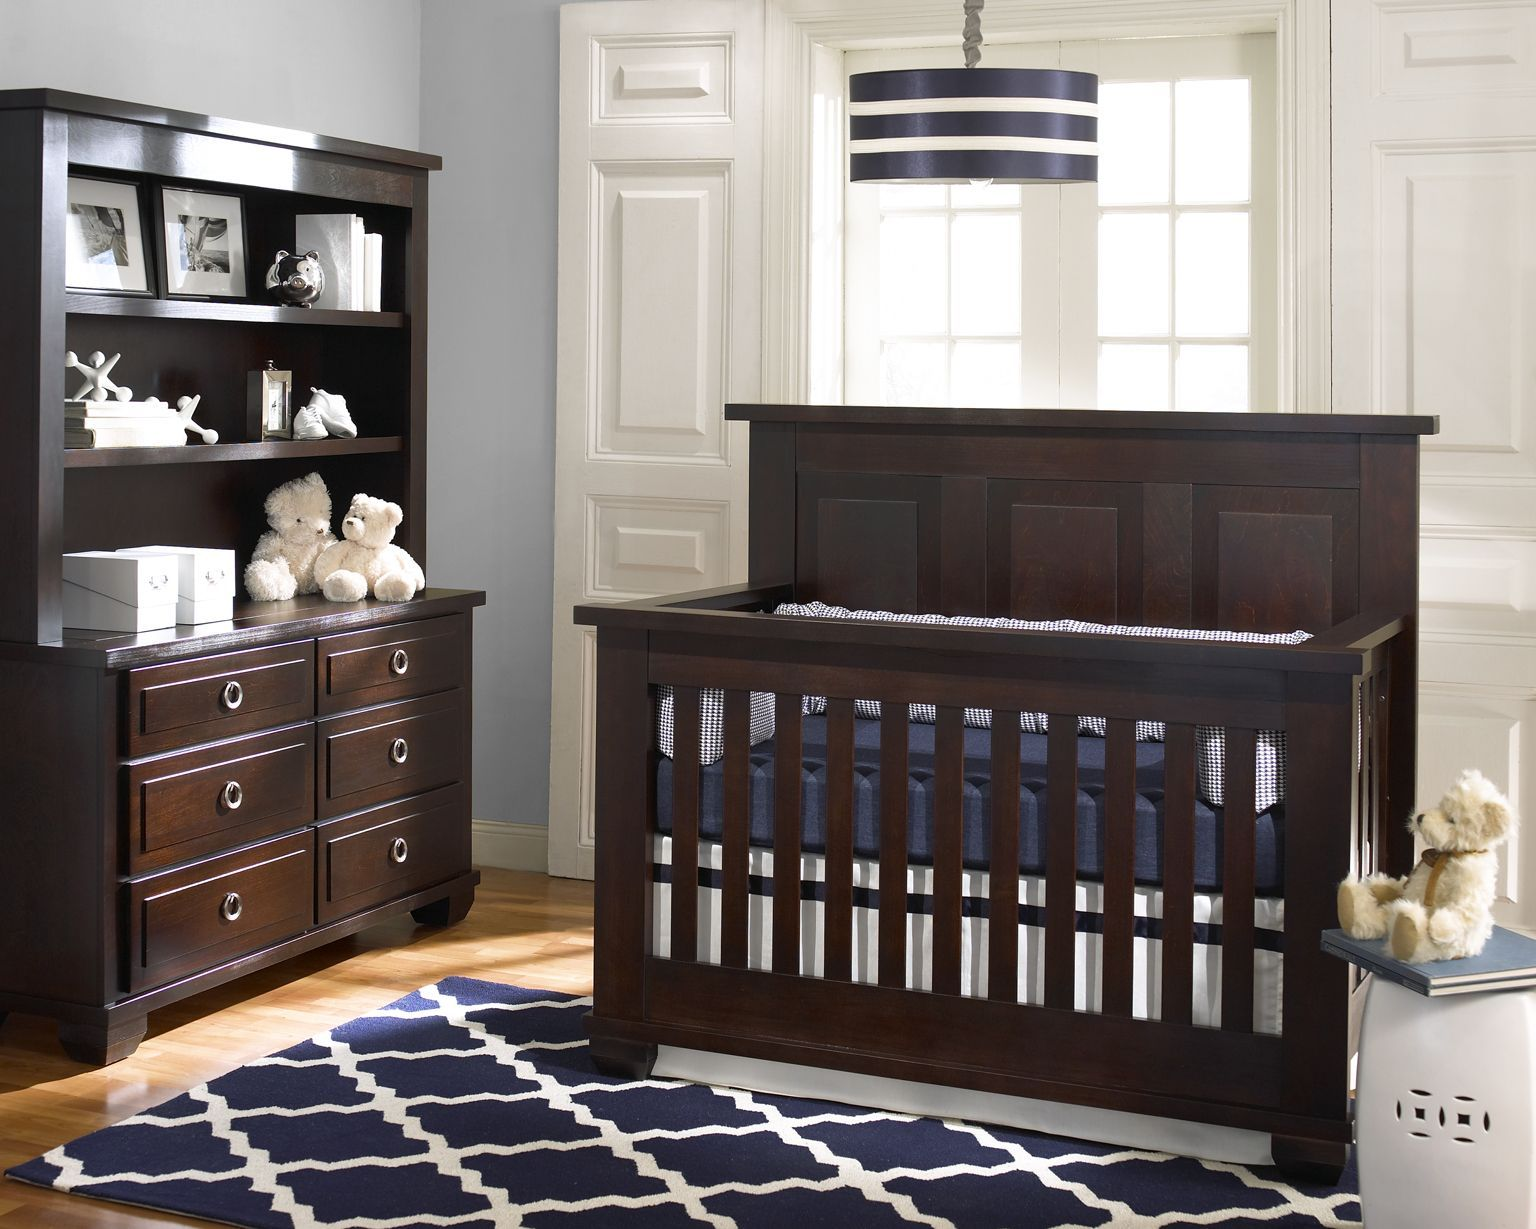 Echelon Sonoma Collection Shown In Bordeaux 100 Solid Wood Made America All Nursery Furniture Is Available At Great Beginnings